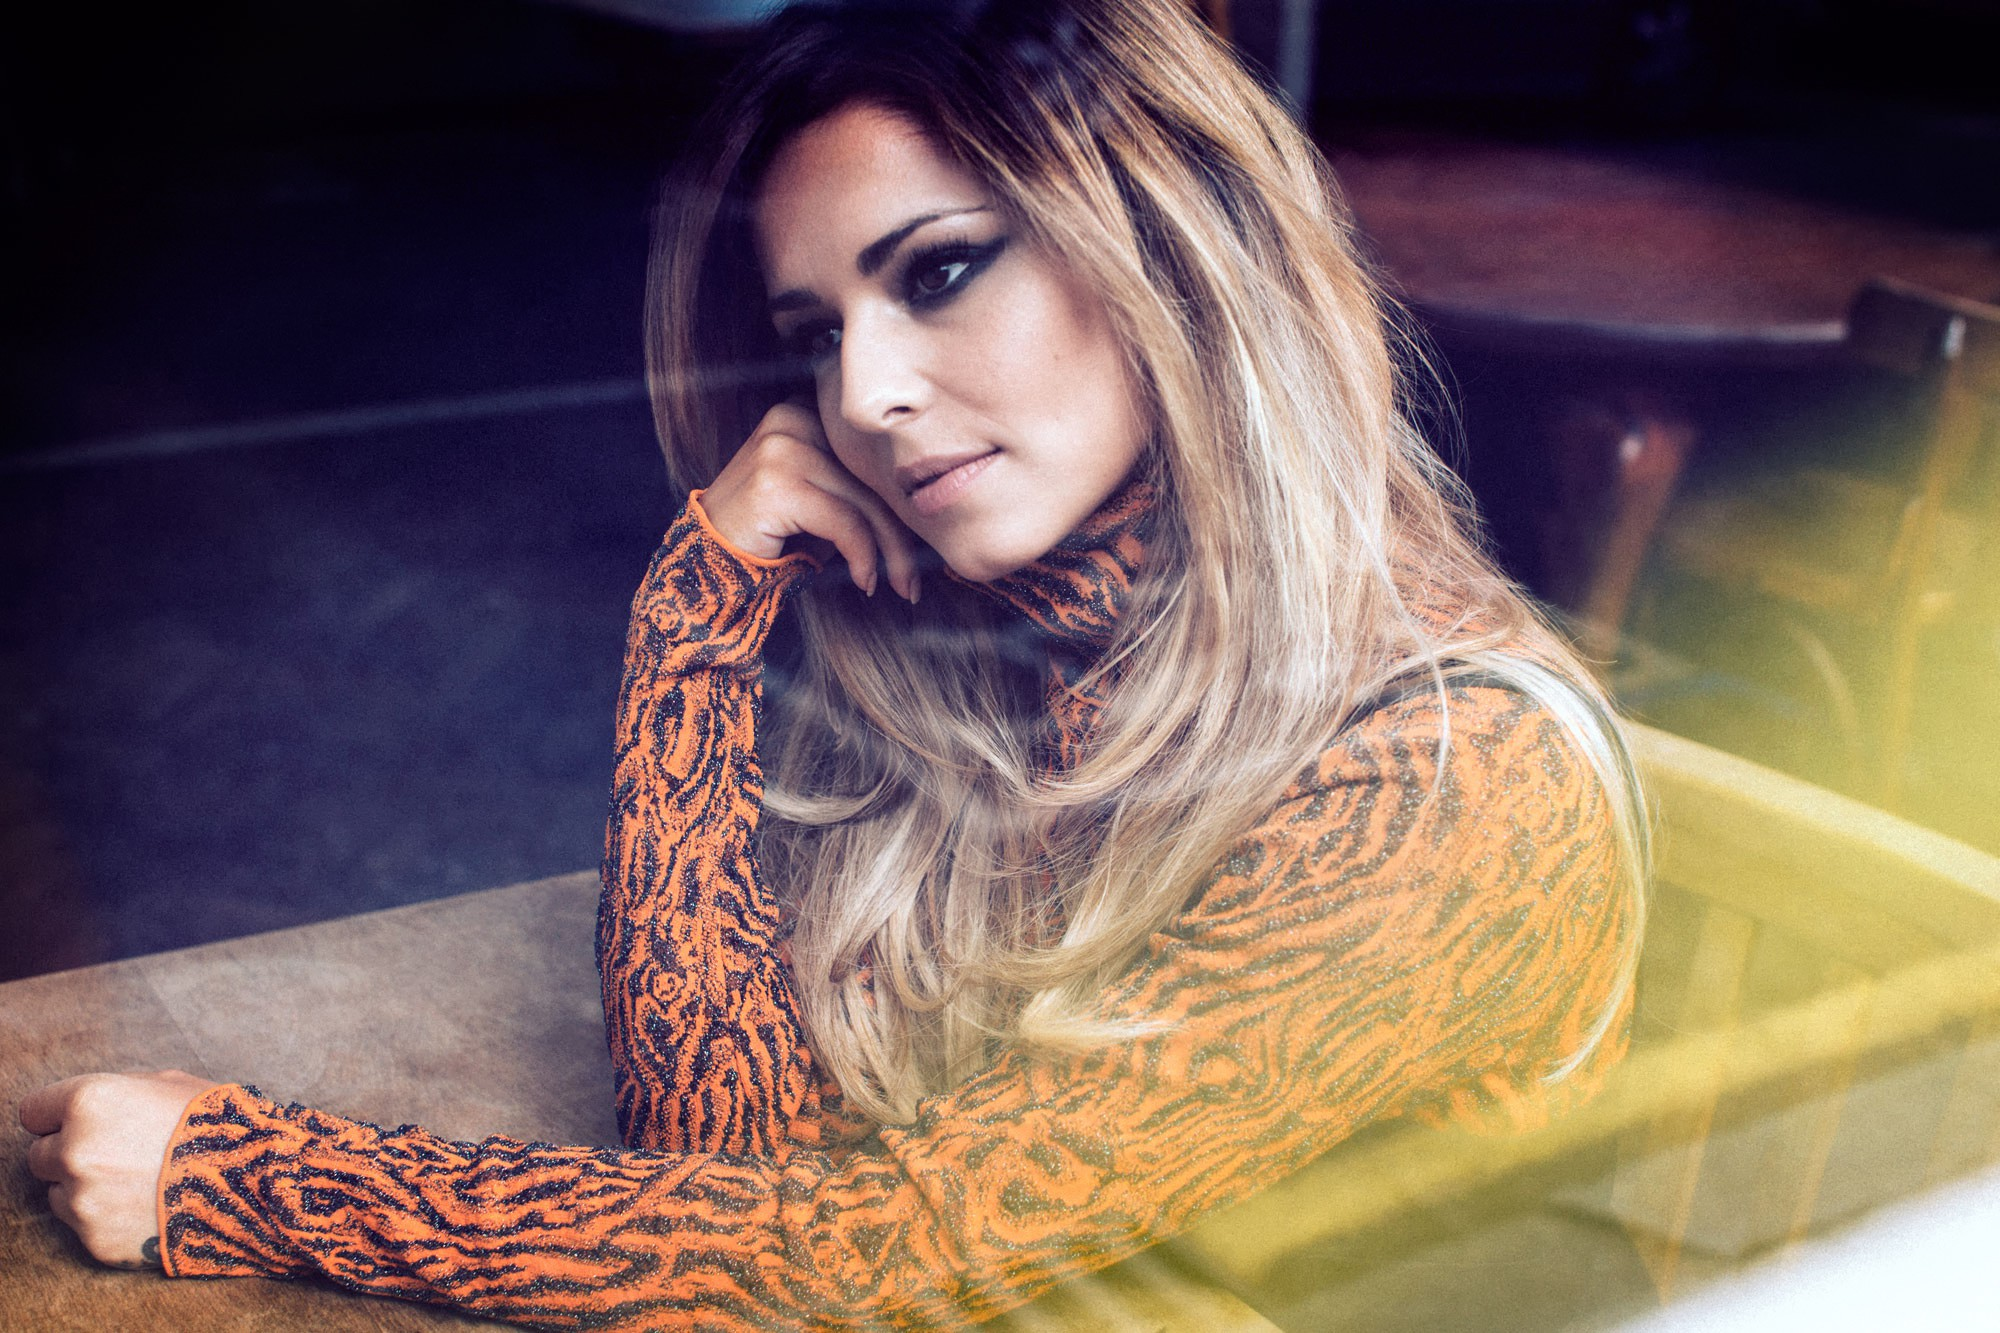 cheryl cole widescreen desktop wallpaper 980